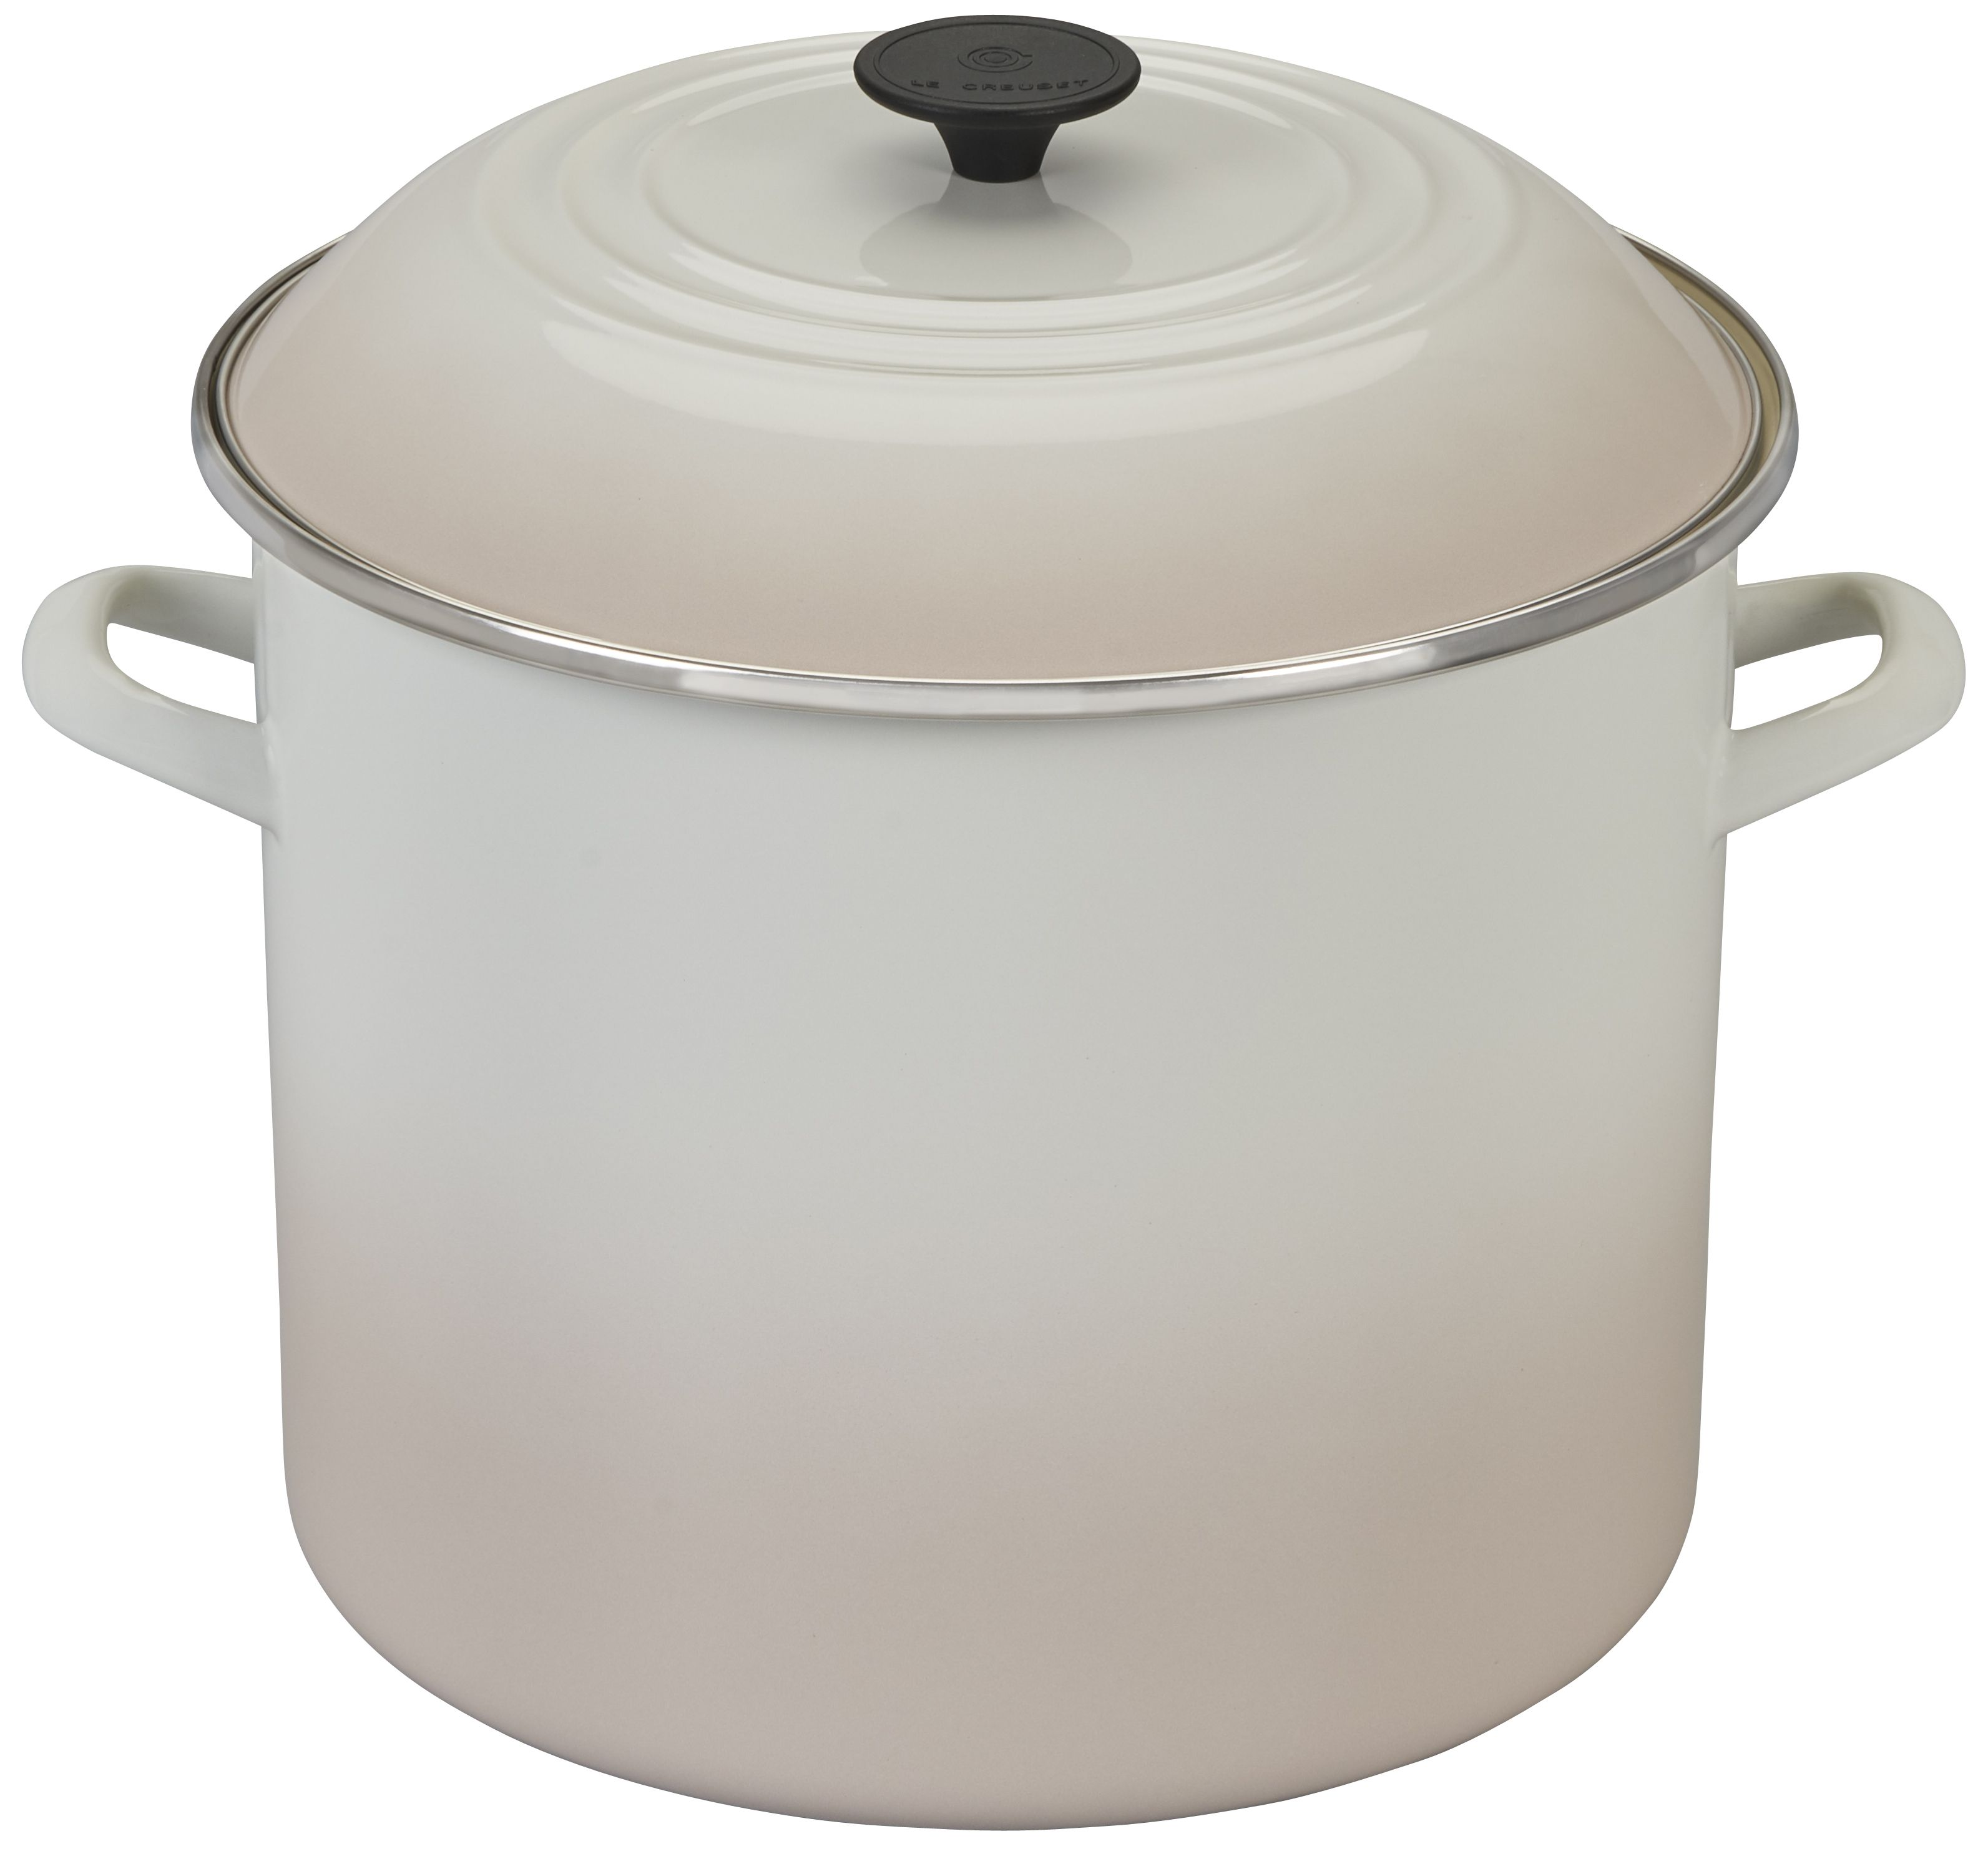 Le Creuset Stockpot Meringue Steel Rims Profile Design Meringue